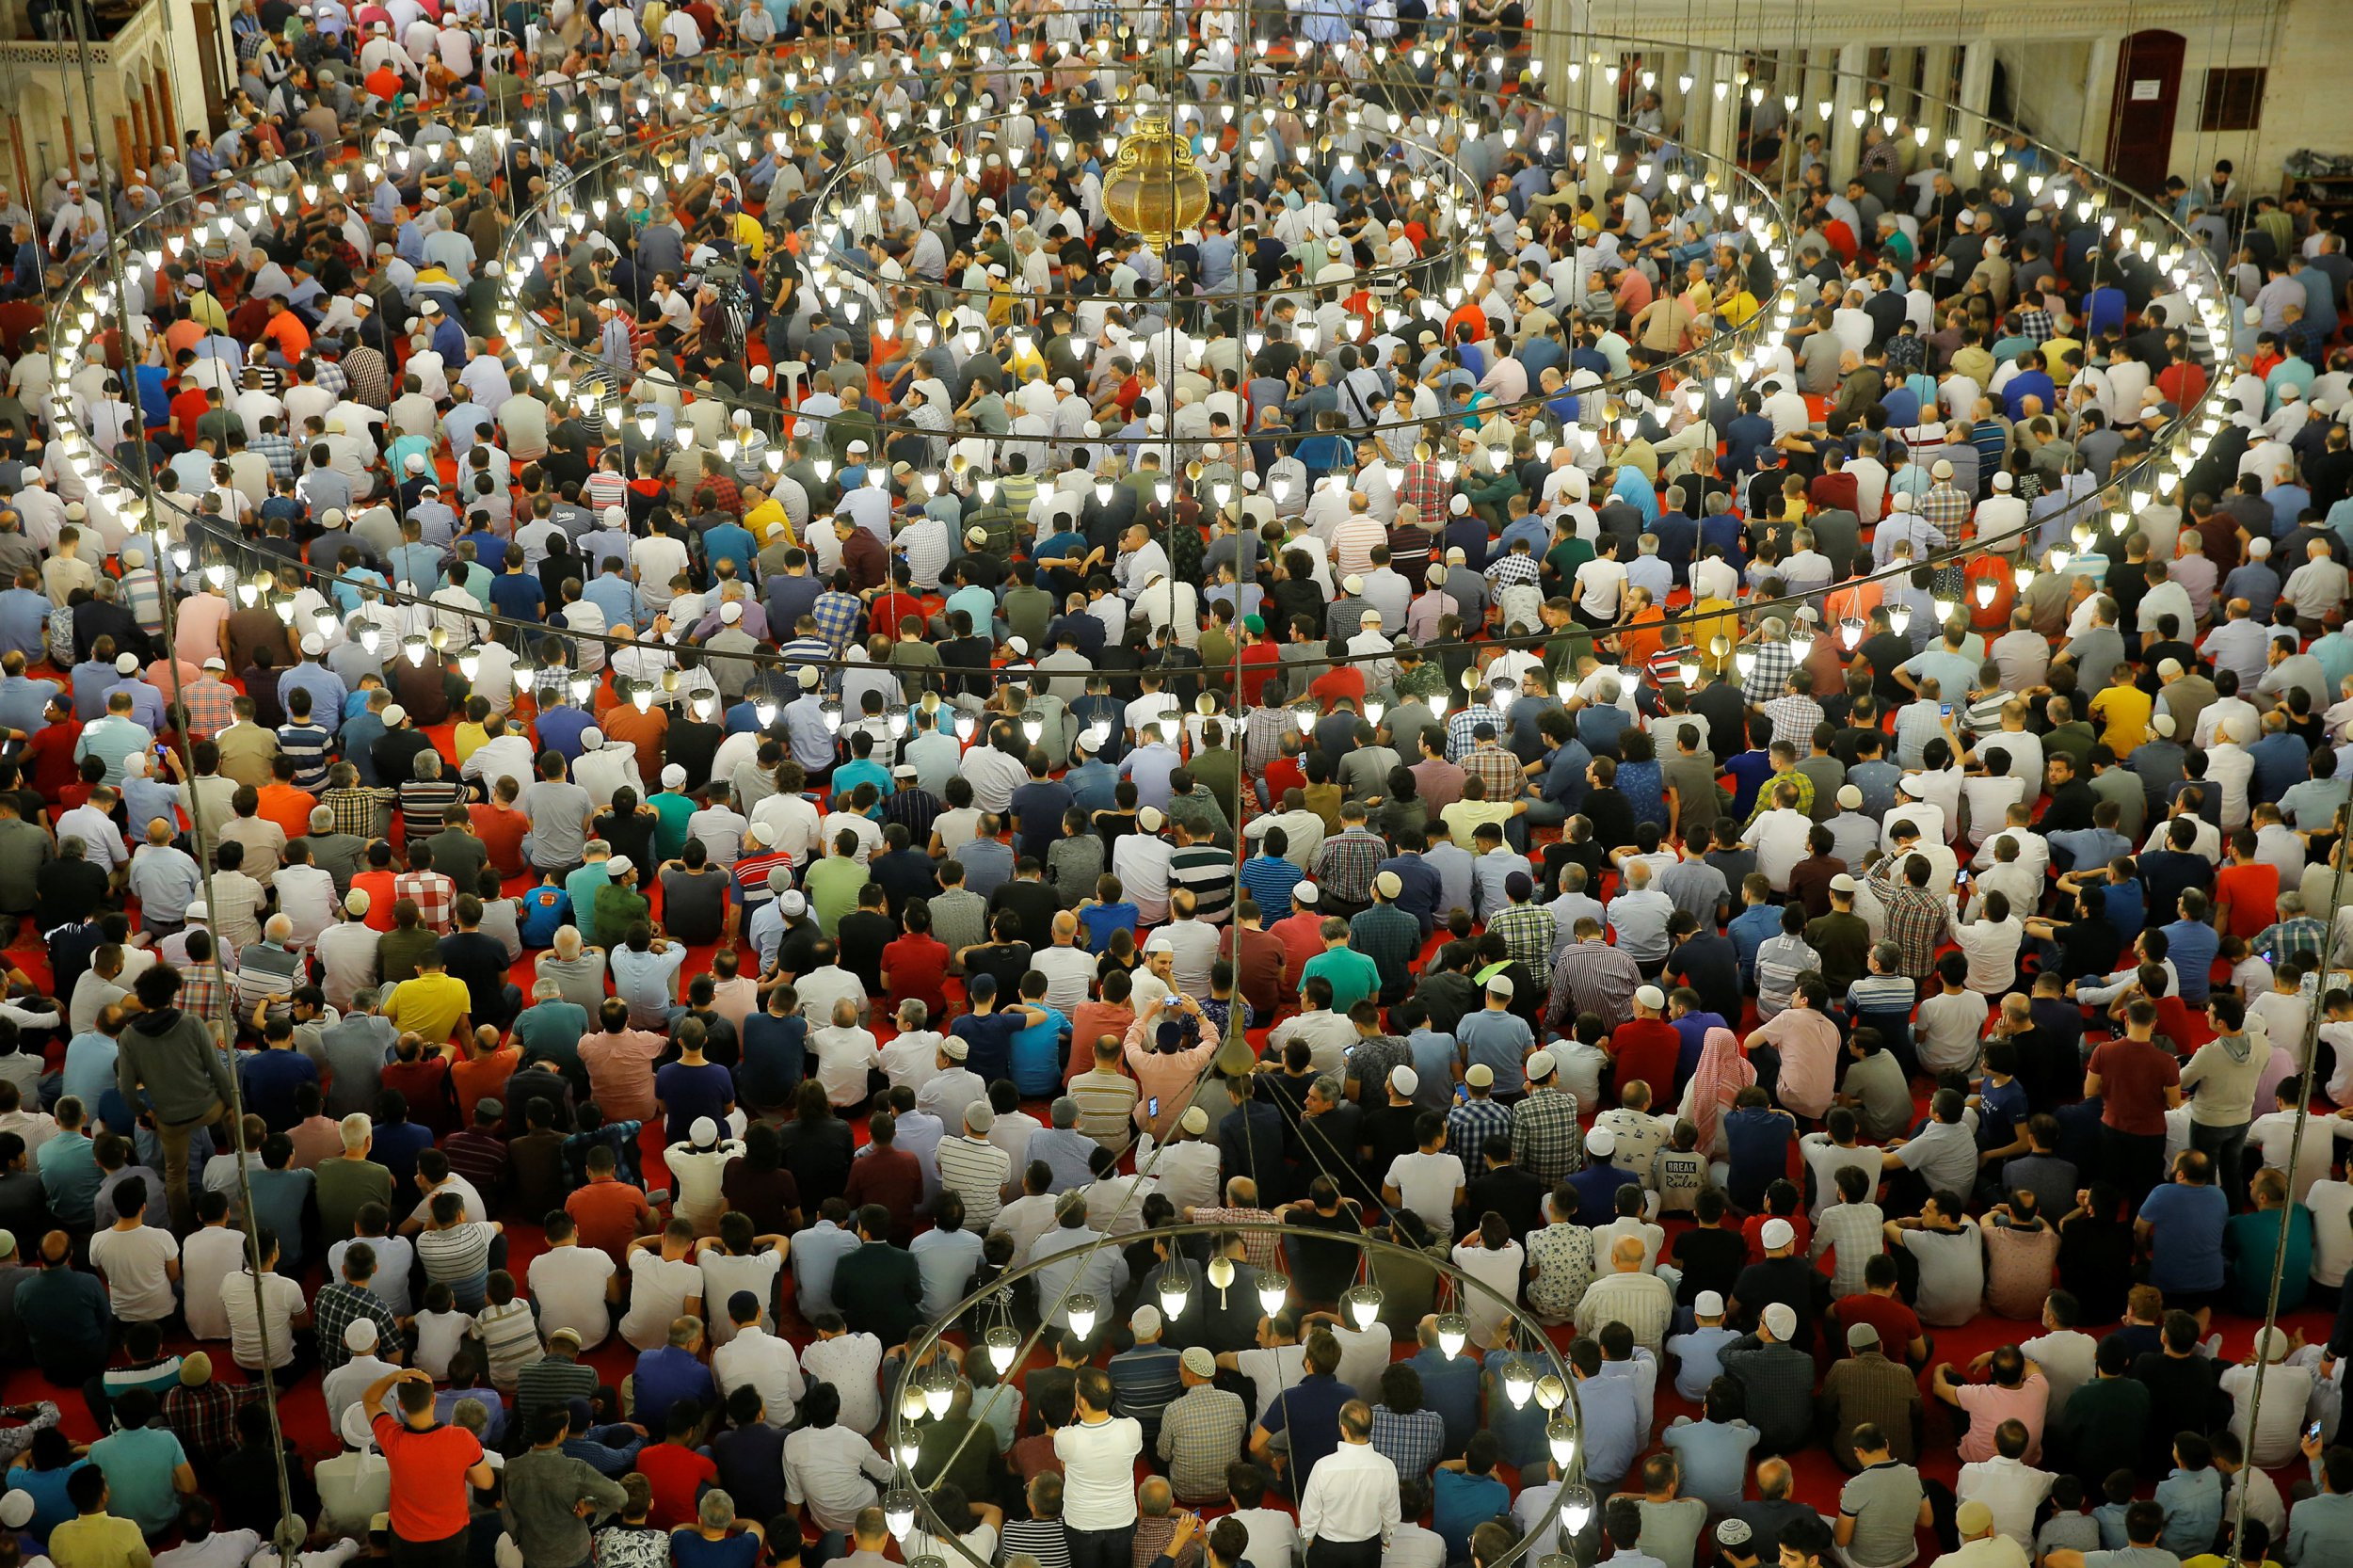 Worshippers pray during the first day celebration of Eid al Fitr at Suleymaniye Mosque in Istanbul, Turkey, June 15, 2018. REUTERS/Huseyin Aldemir